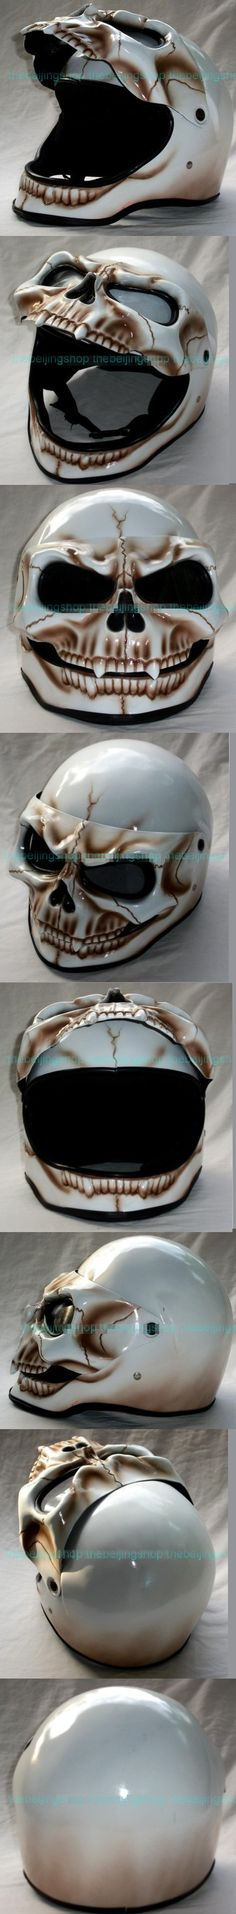 Flip up Face Shield Skeleton Full face Motorcycle Helmet - Diana`s Custom Design K, that's pretty cool!